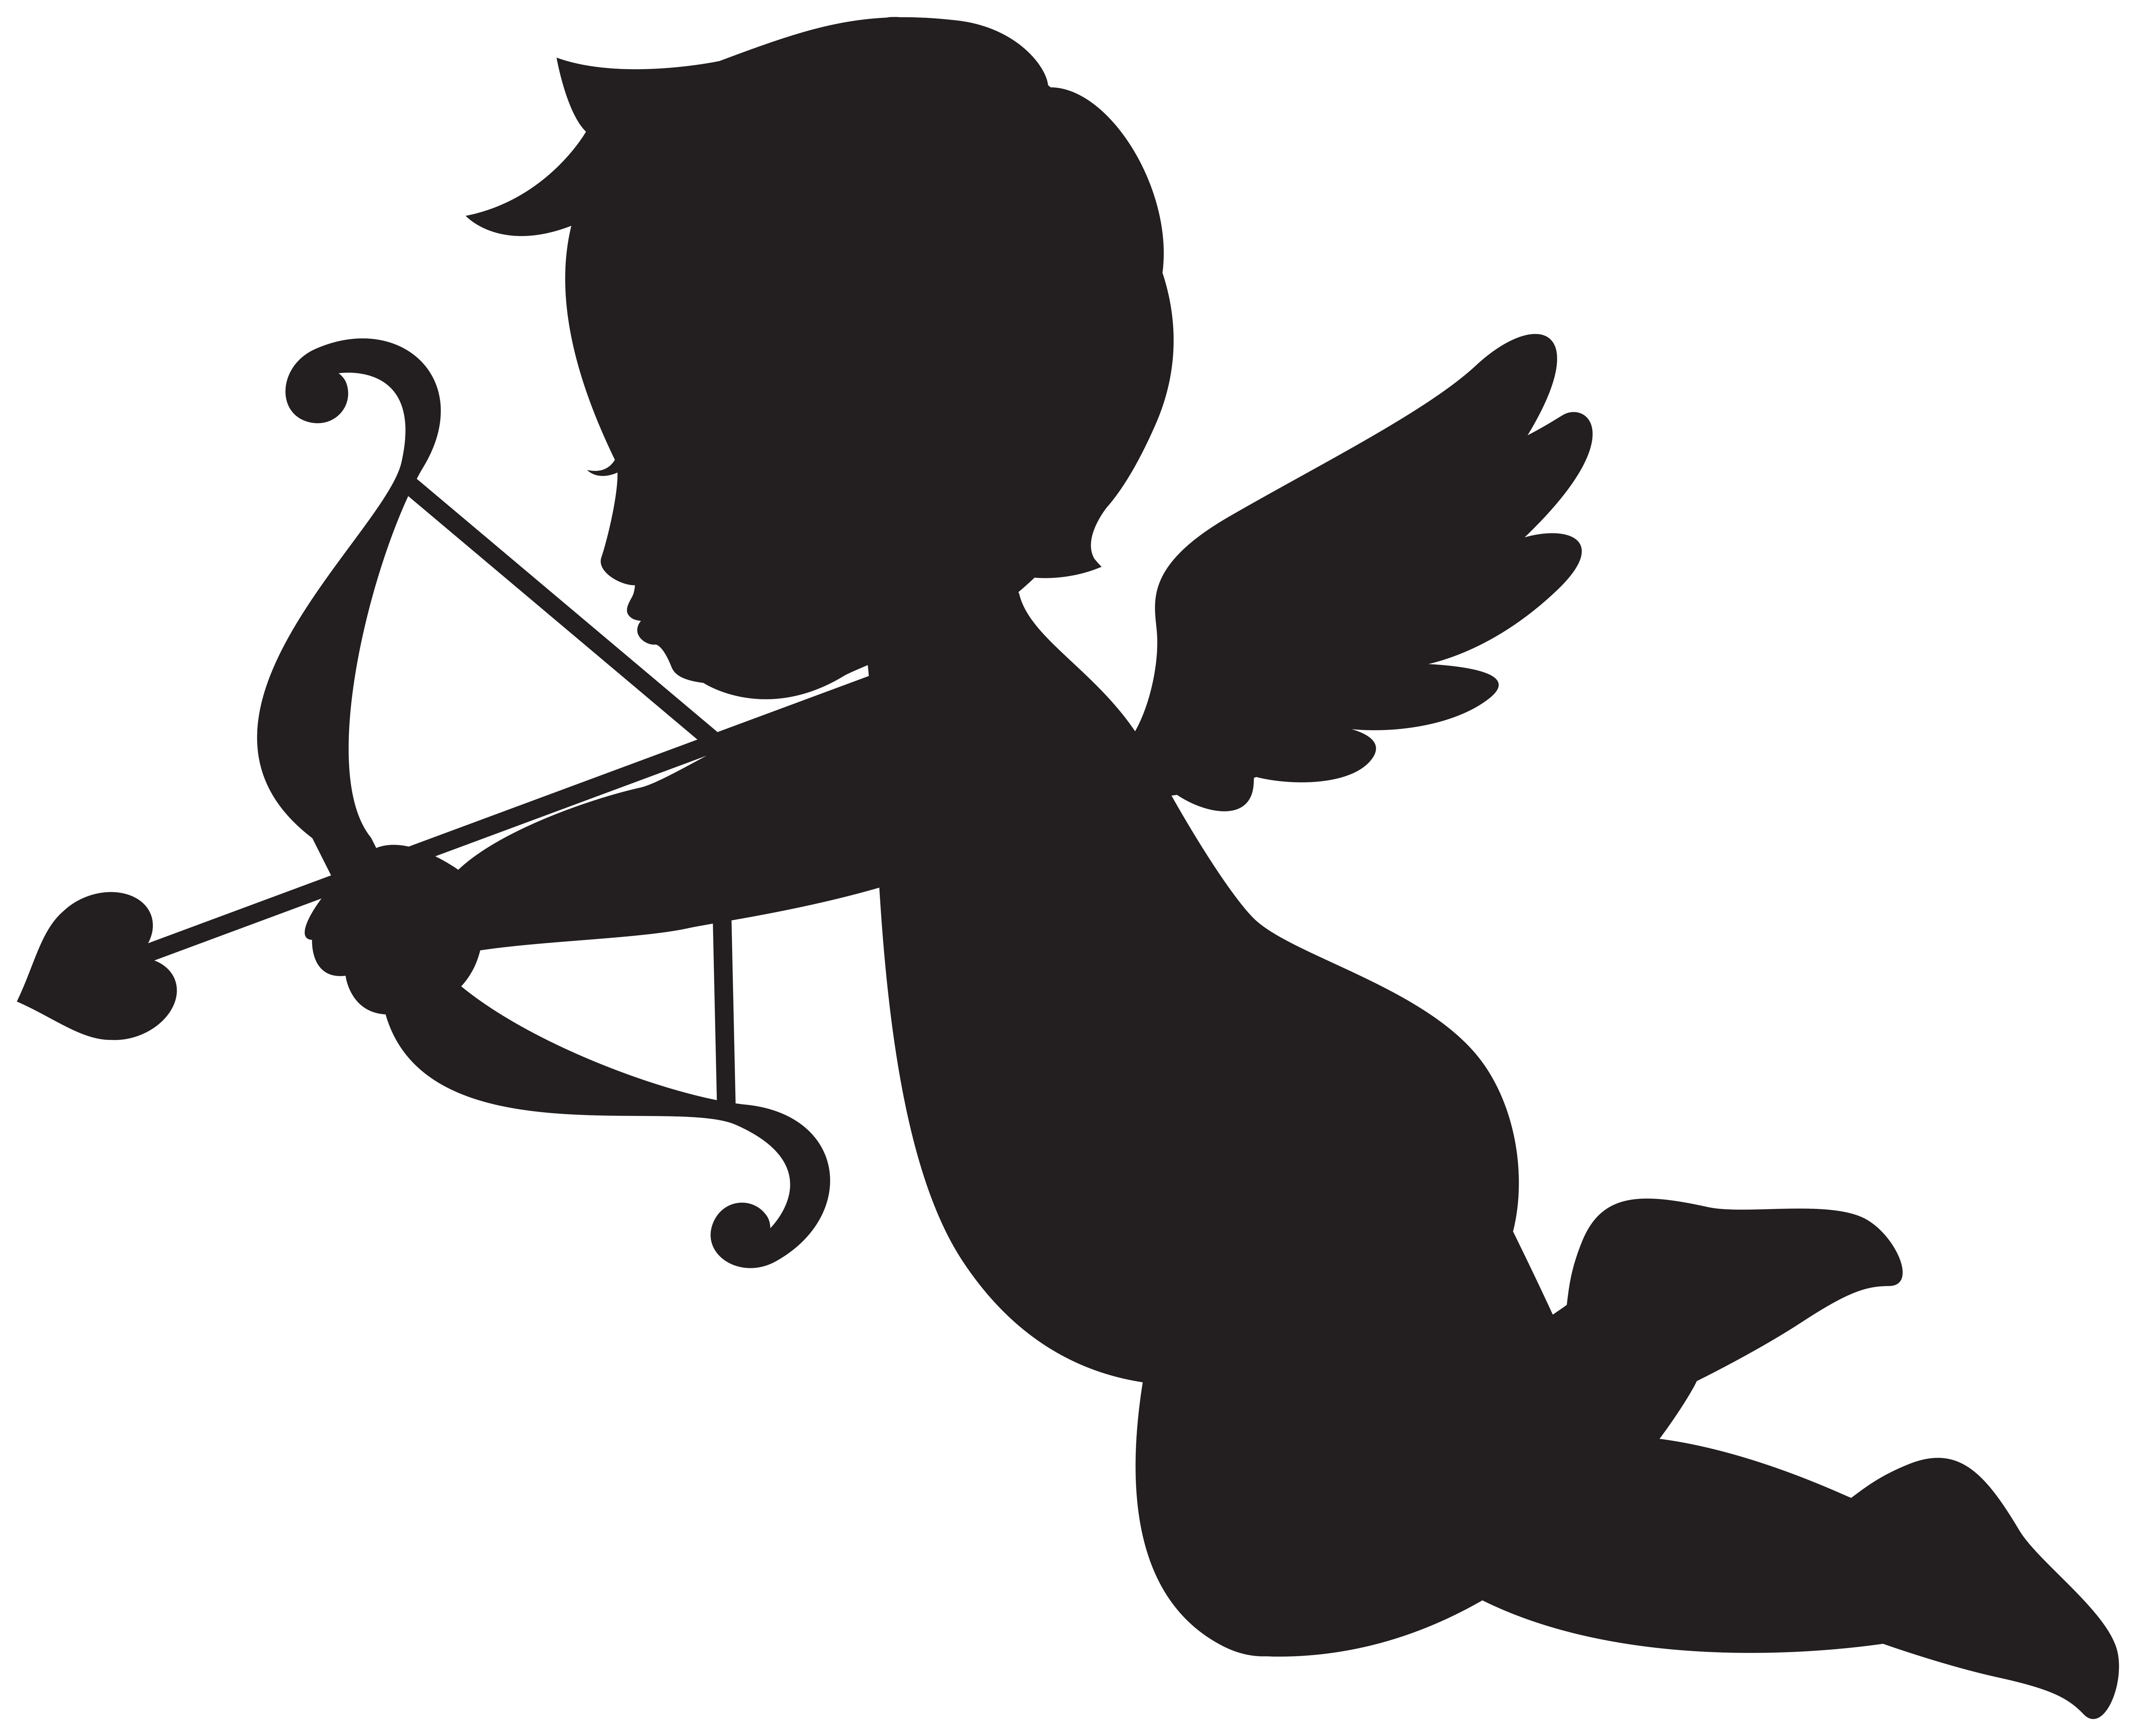 Cupid clipart silhouette, Cupid silhouette Transparent FREE.